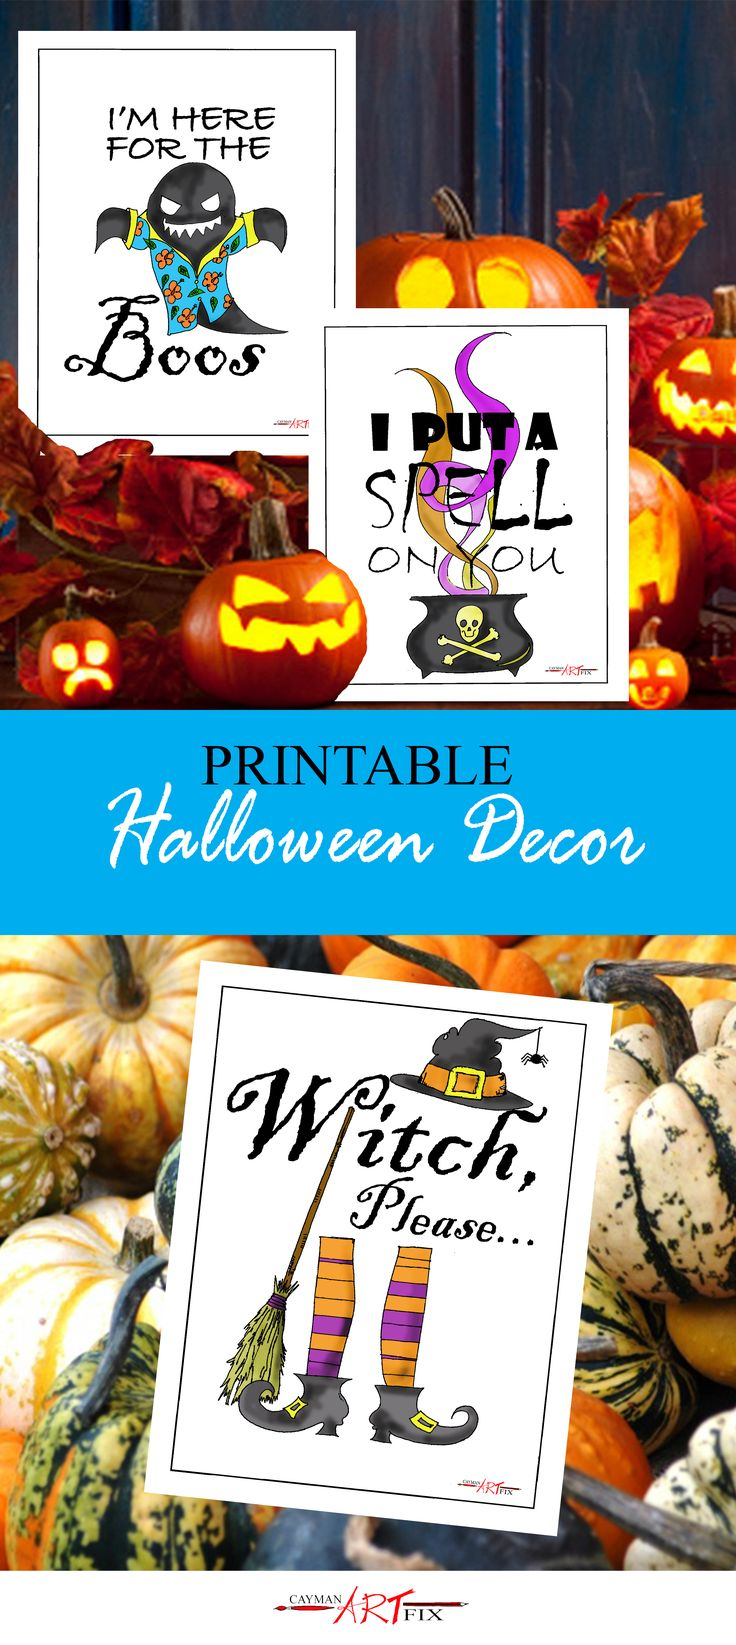 Printable Halloween Decor! Print and put in a frame for best effects! #Halloween #Printables #Downloads #Free #Creativelife #Cayman Islands #CaymanArtfix